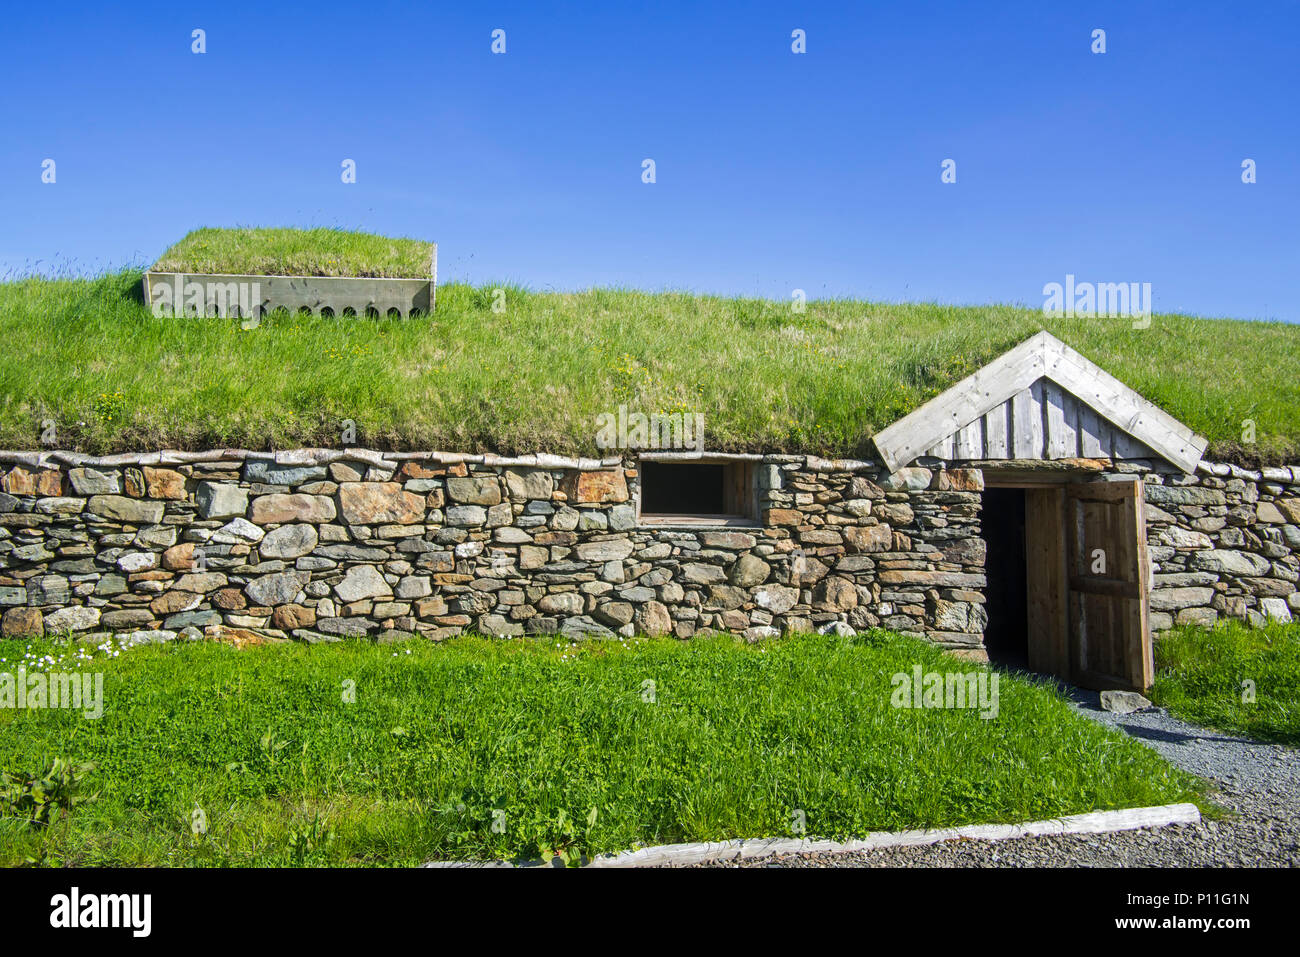 Replica of Norse Viking longhouse at Brookpoint, Unst, Shetland Islands, Scotland, UK - Stock Image